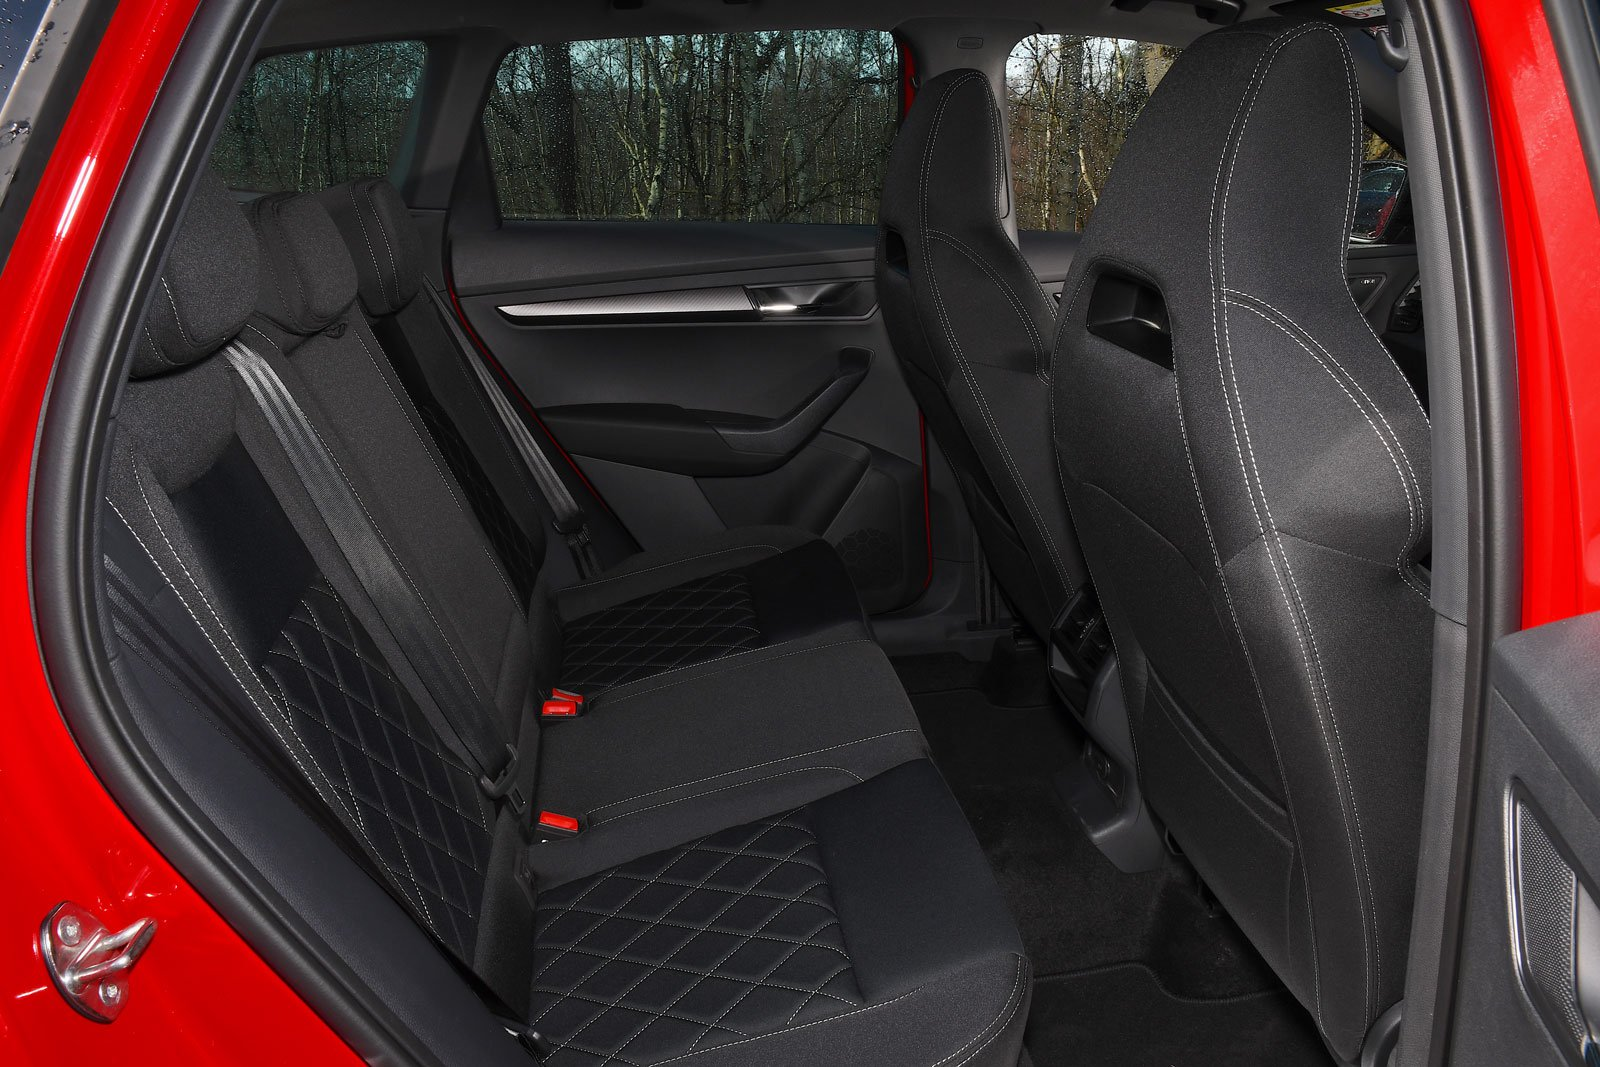 Skoda Karoq 2021 rear seats